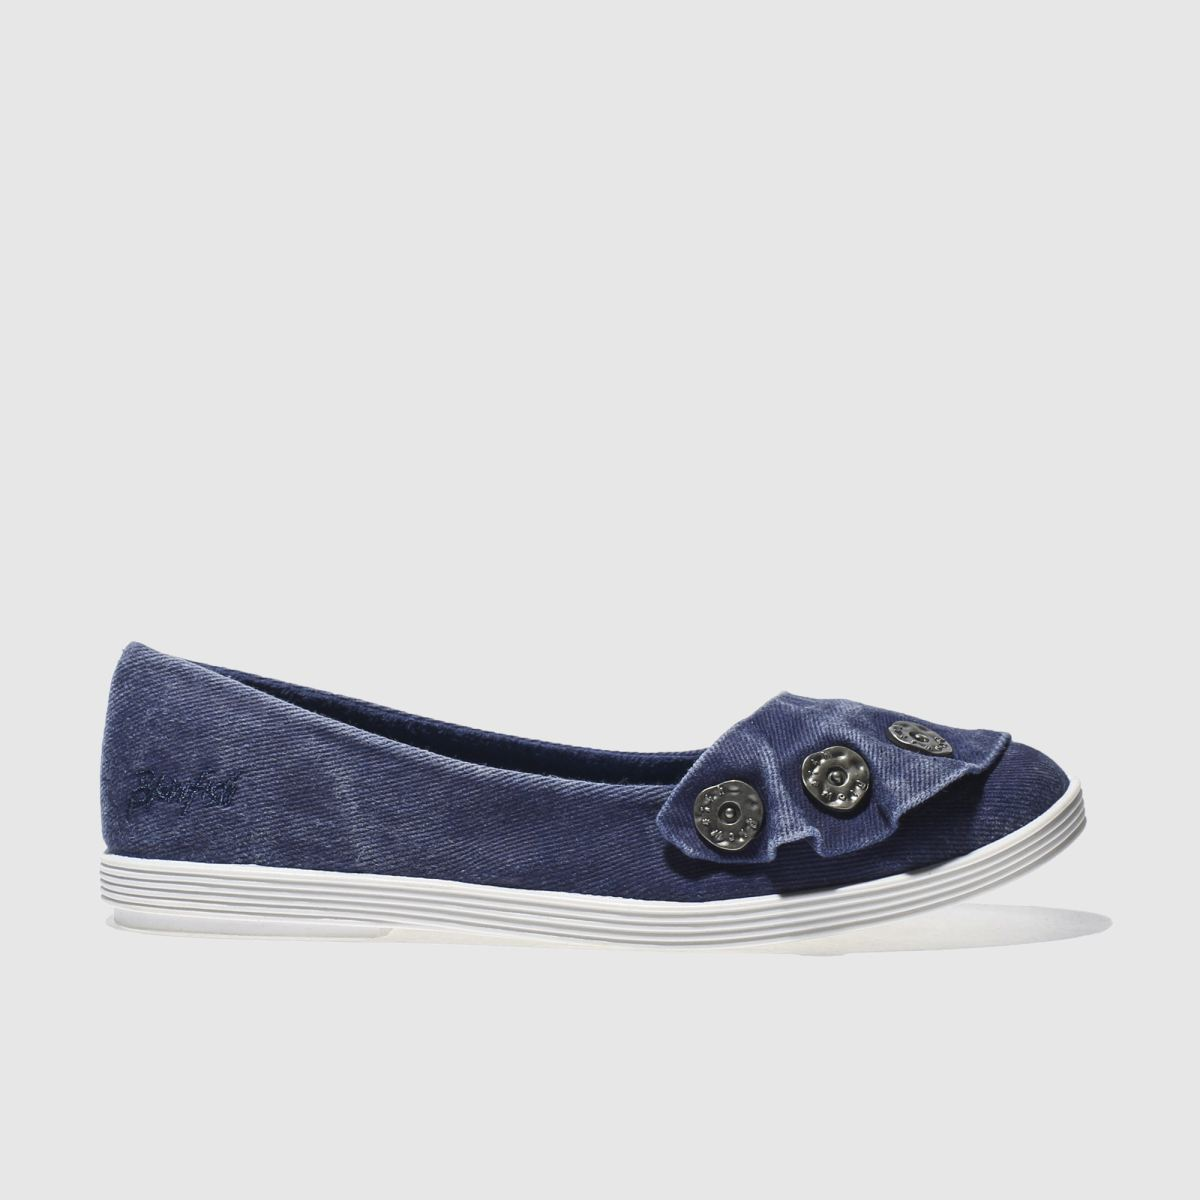 Photo of Blowfish navy & white garden flat shoes